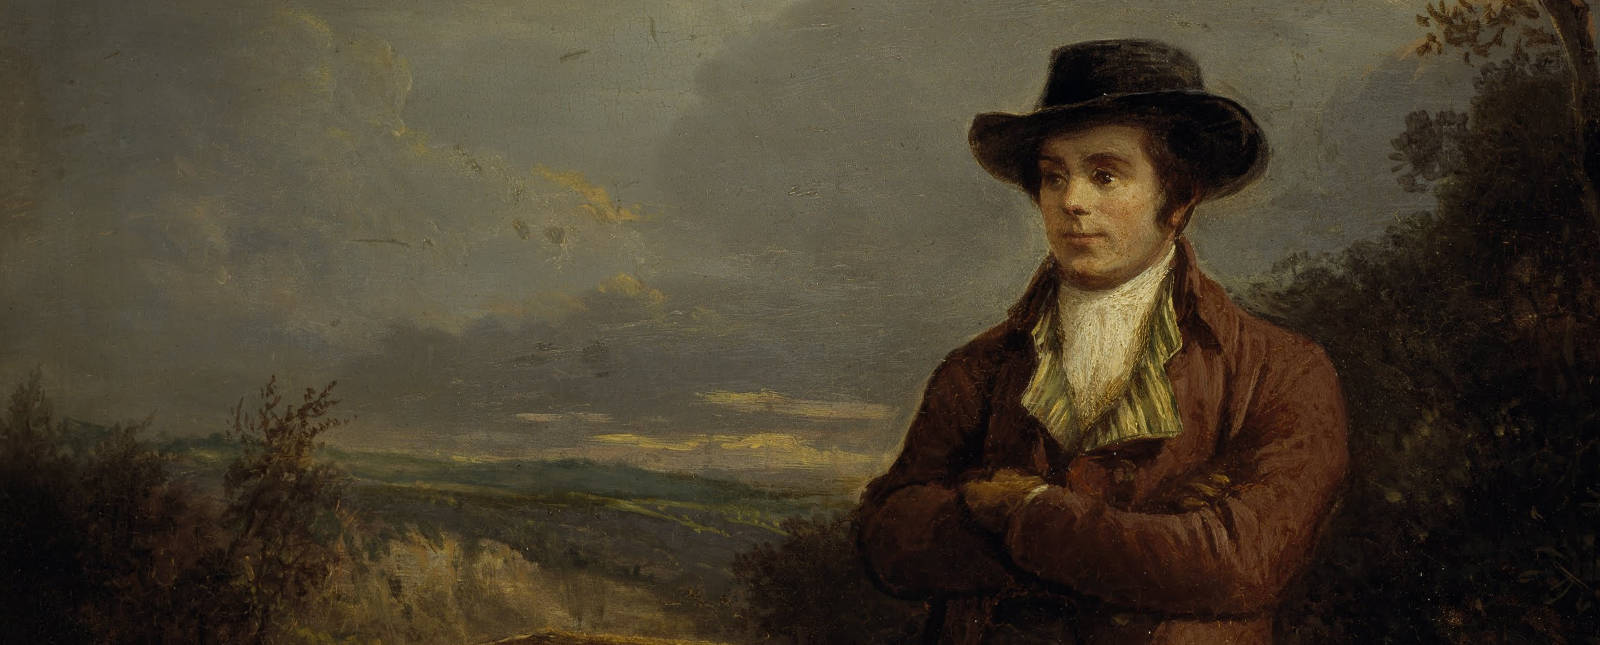 Detail from Alexander Naysmith portrait of Robert Burns